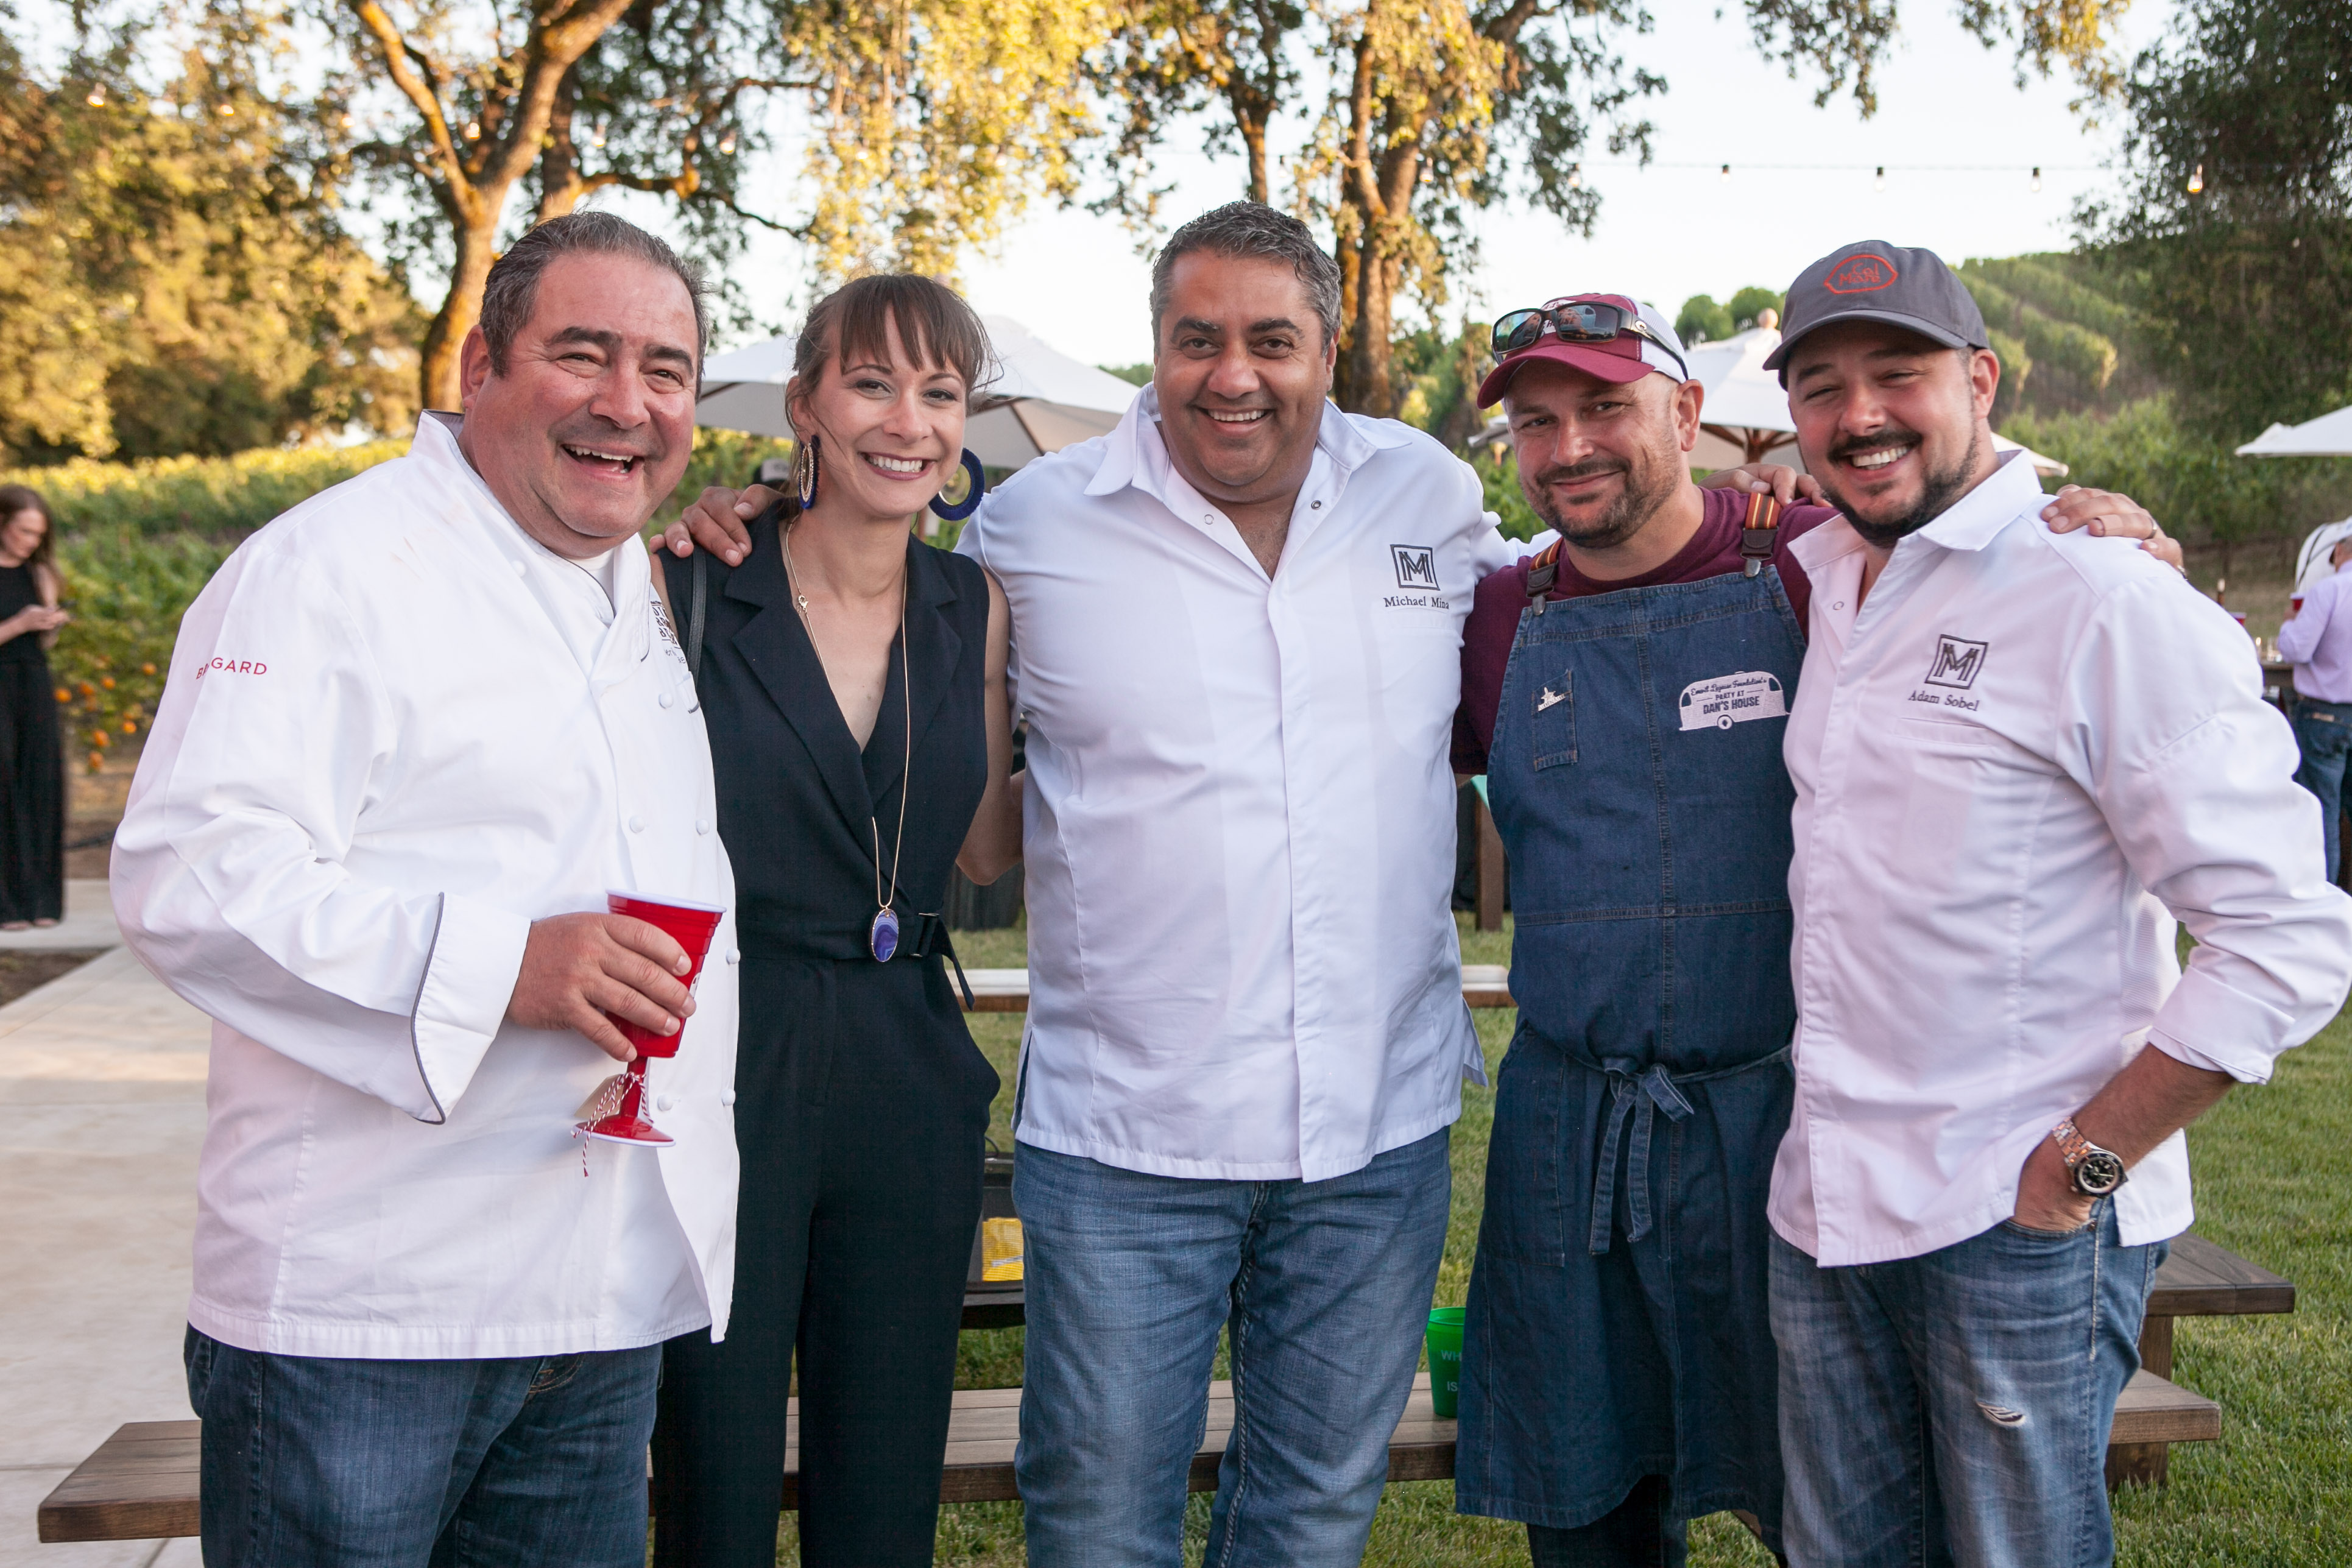 Emeril Lagasse, Antonia Keller, Michael Mina, Brian Kish and Adam Sobel at Arista Winery for Dan's Trailer Party in June 2018. Photo: Molly Loubiere (ELF)